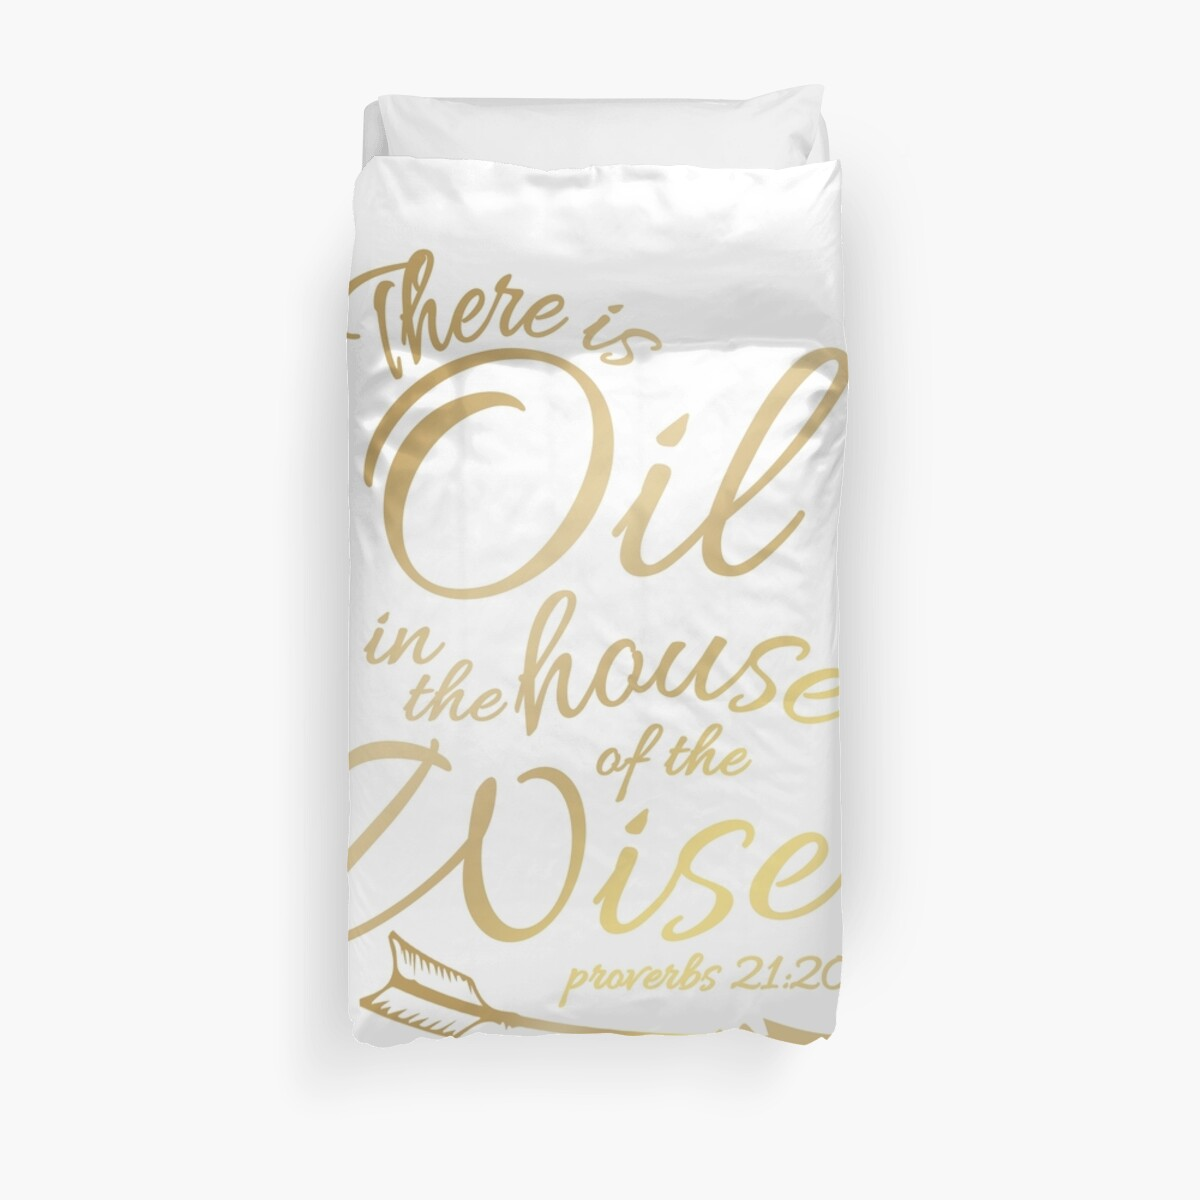 'There Is Oil - Funny Religious Bible Essential Oils T-Shirt' Duvet Cover  by noirty